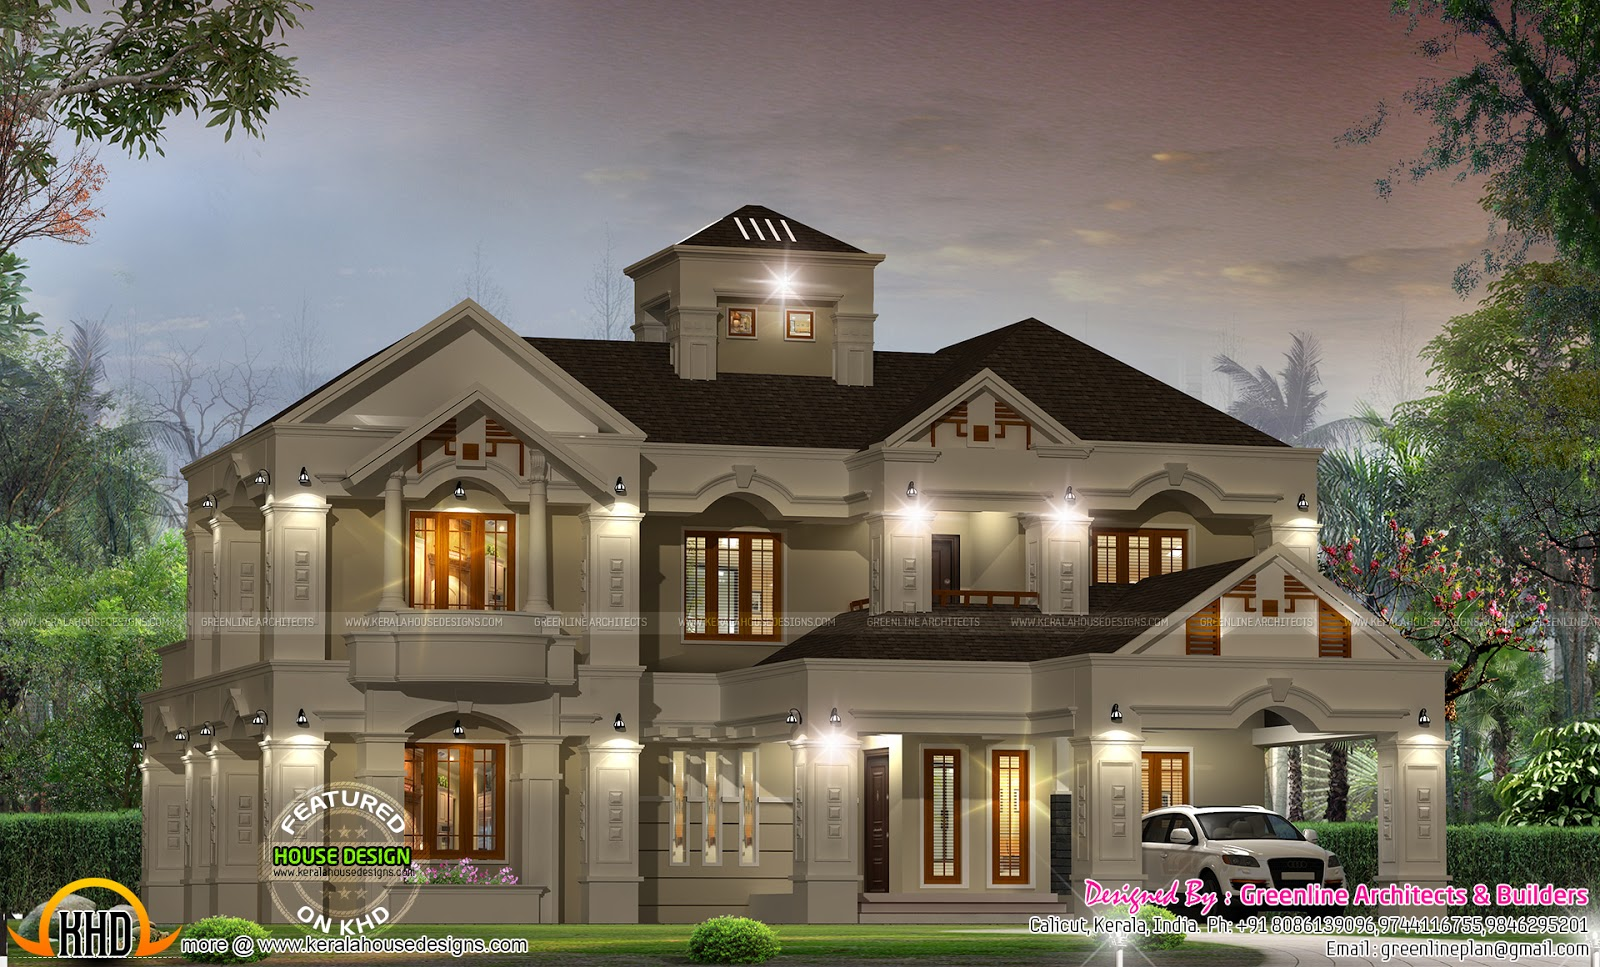 Luxury villa design in kerala kerala home design and for Villas designs photos